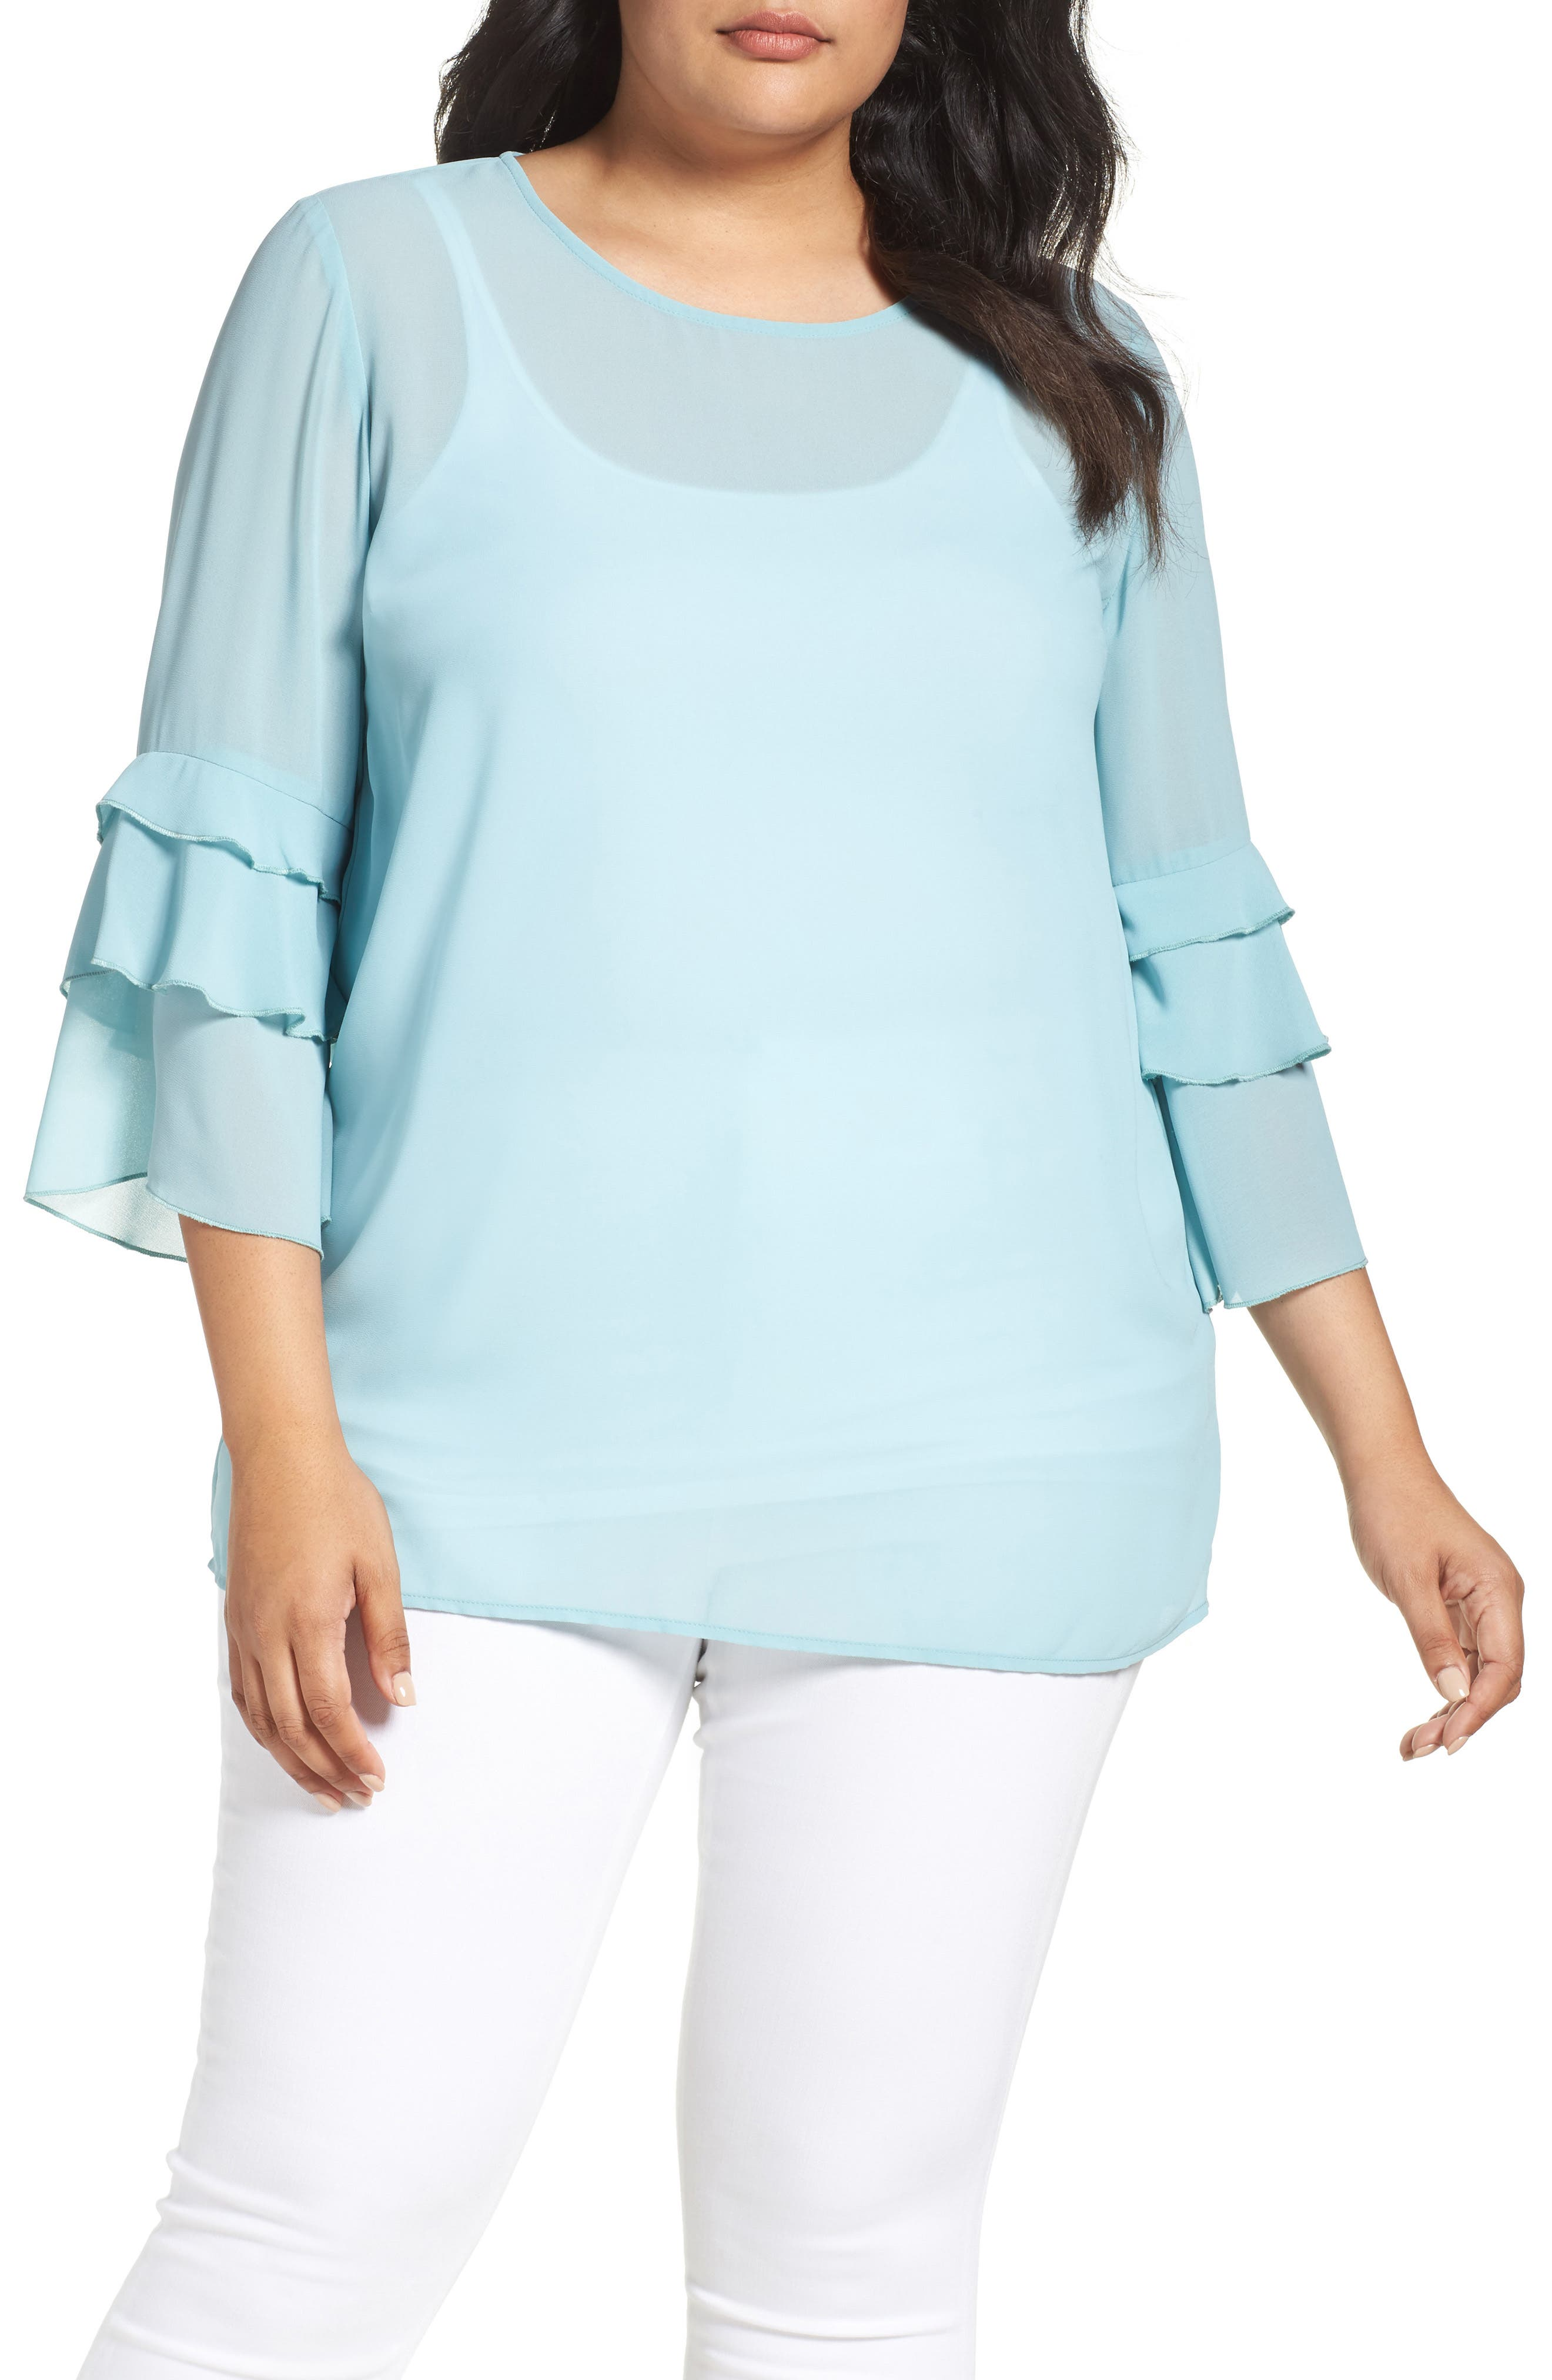 Ruffle Sleeve Blouse,                             Main thumbnail 1, color,                             Blue